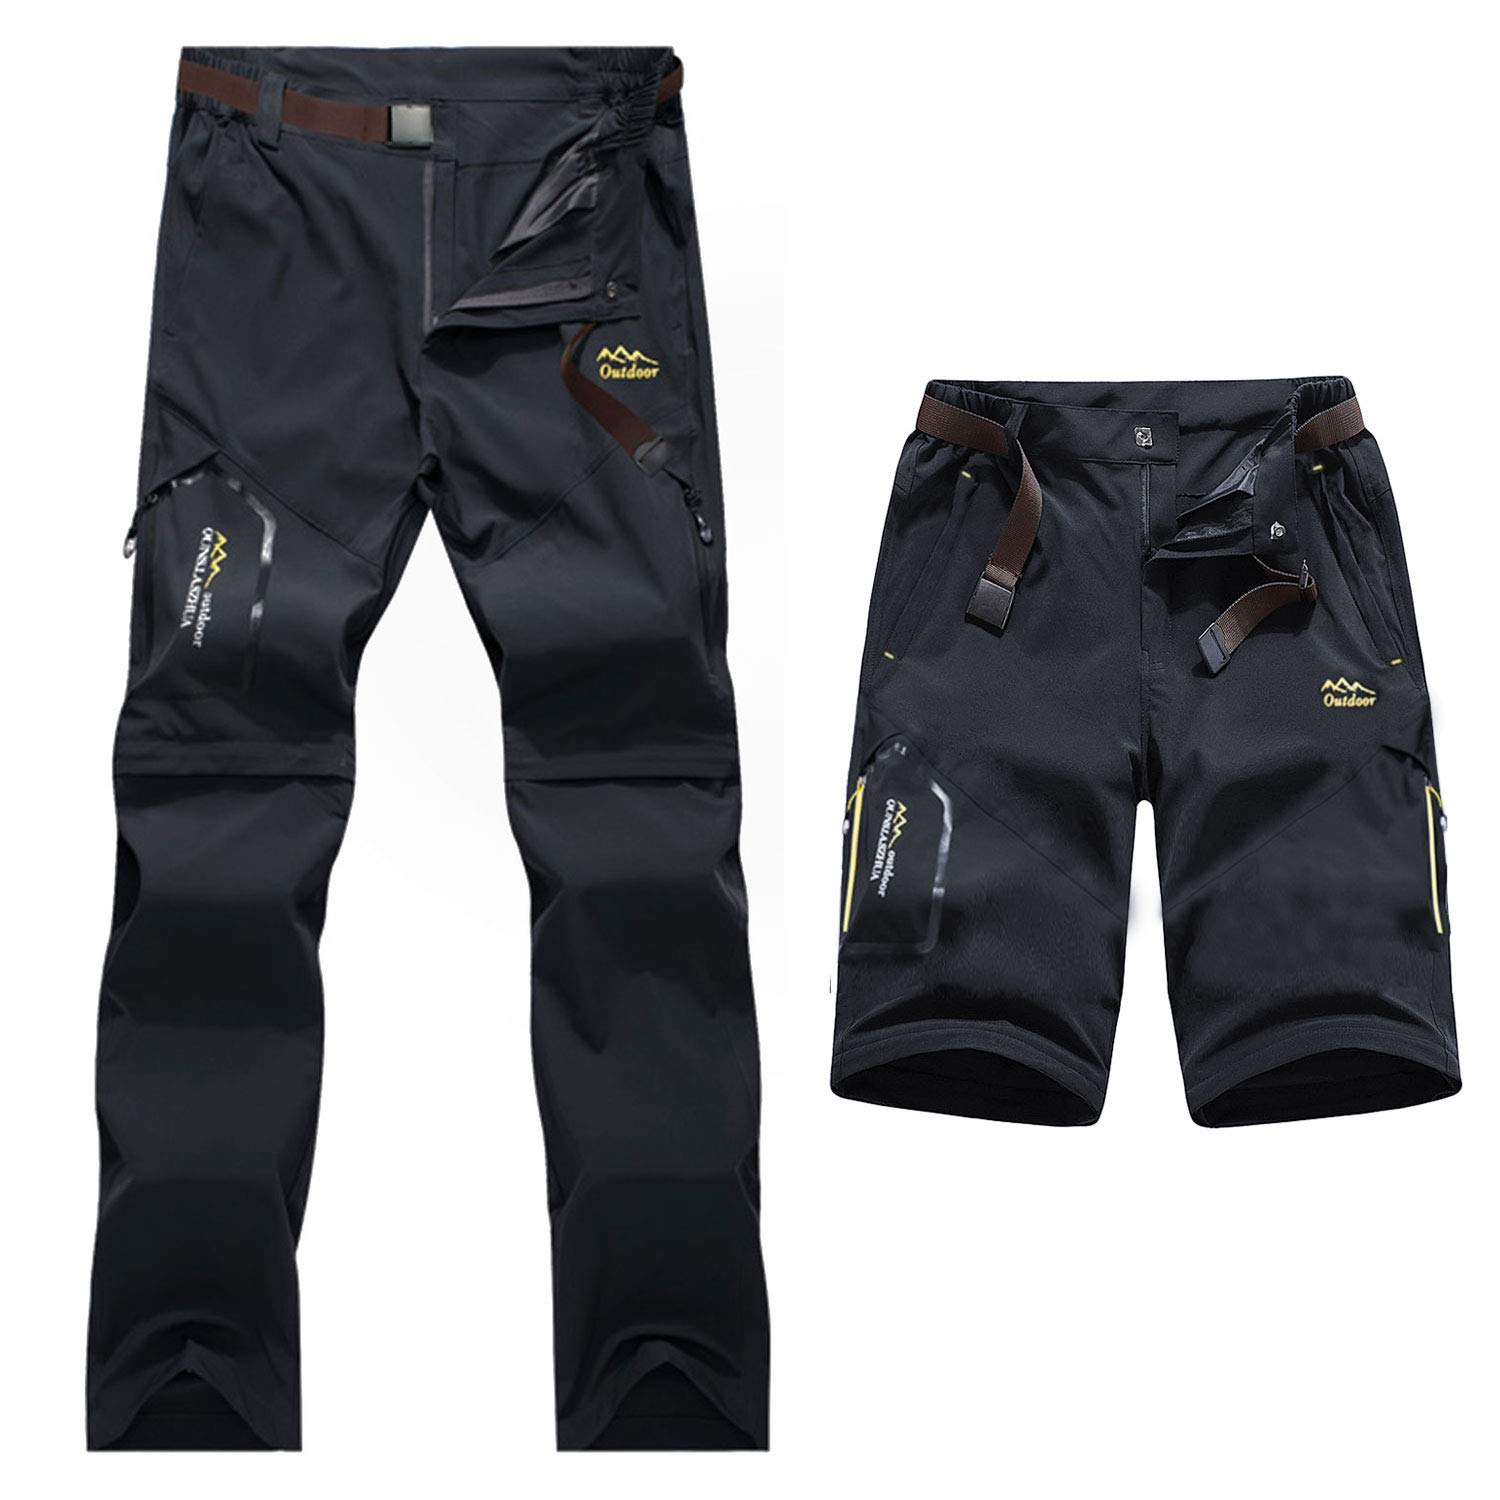 BWBIKE Mens Hiking Trousers Quick Dry Walking Trousers Outdoor Convertible Trousers with Belt For Climbing Camping